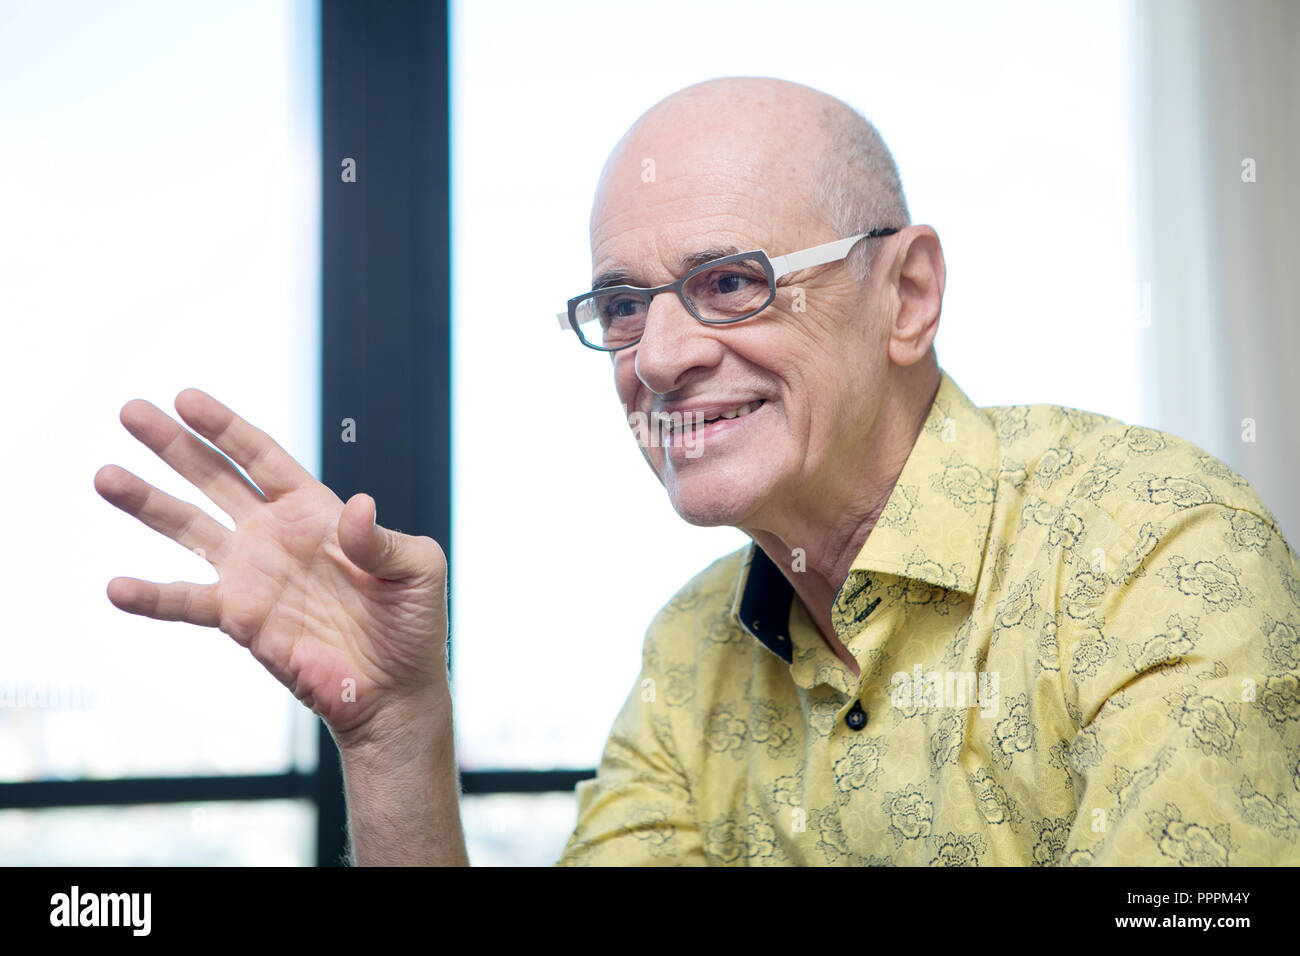 Interview with Marcos Caruso, Brazilian actor and author of soap operas, plays and screenplays. - Stock Image